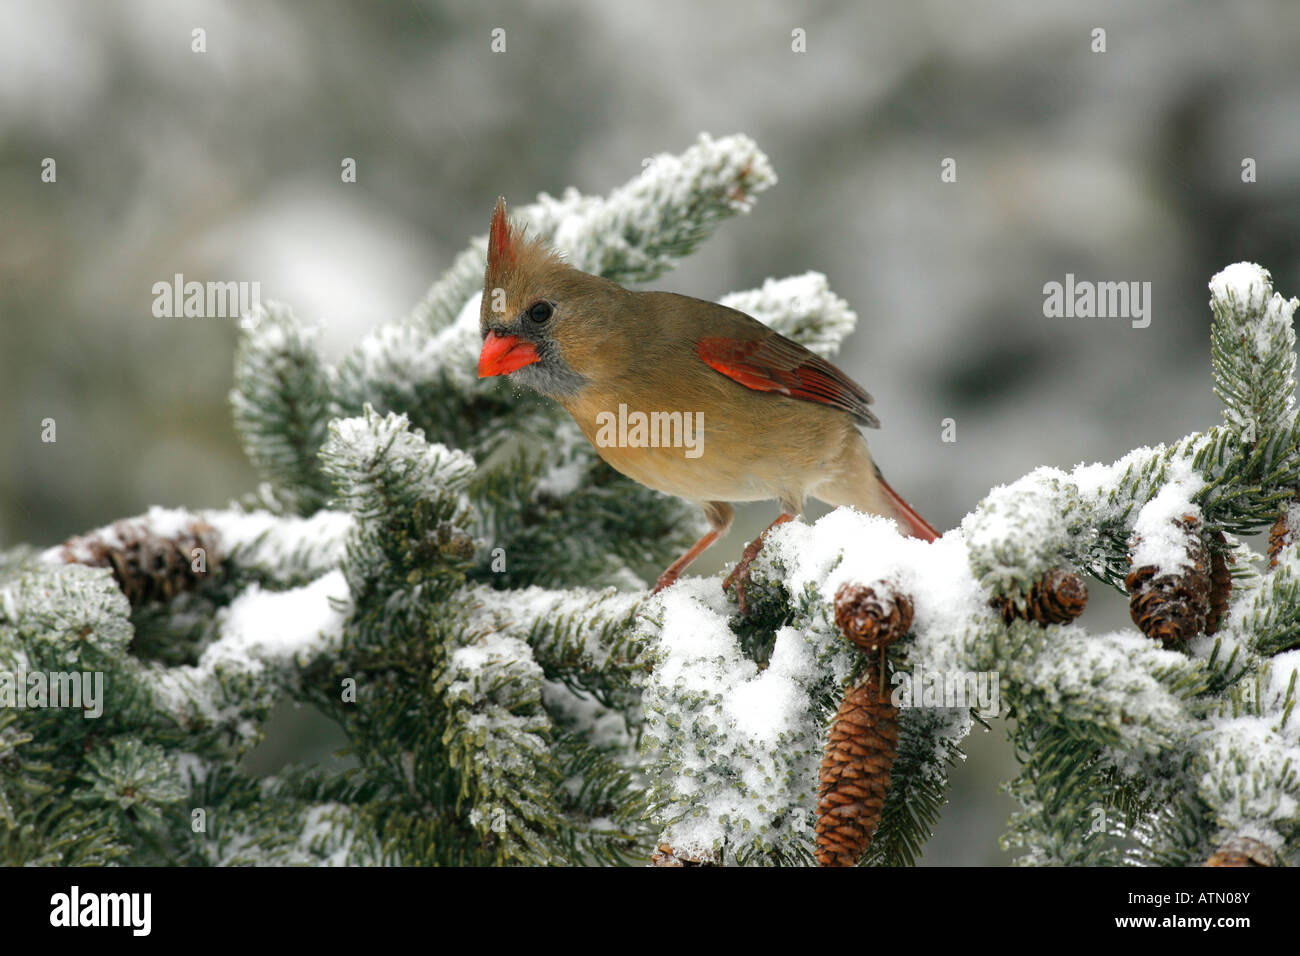 Female Northern Cardinal Perched in Snow Covered Spruce Tree - Stock Image